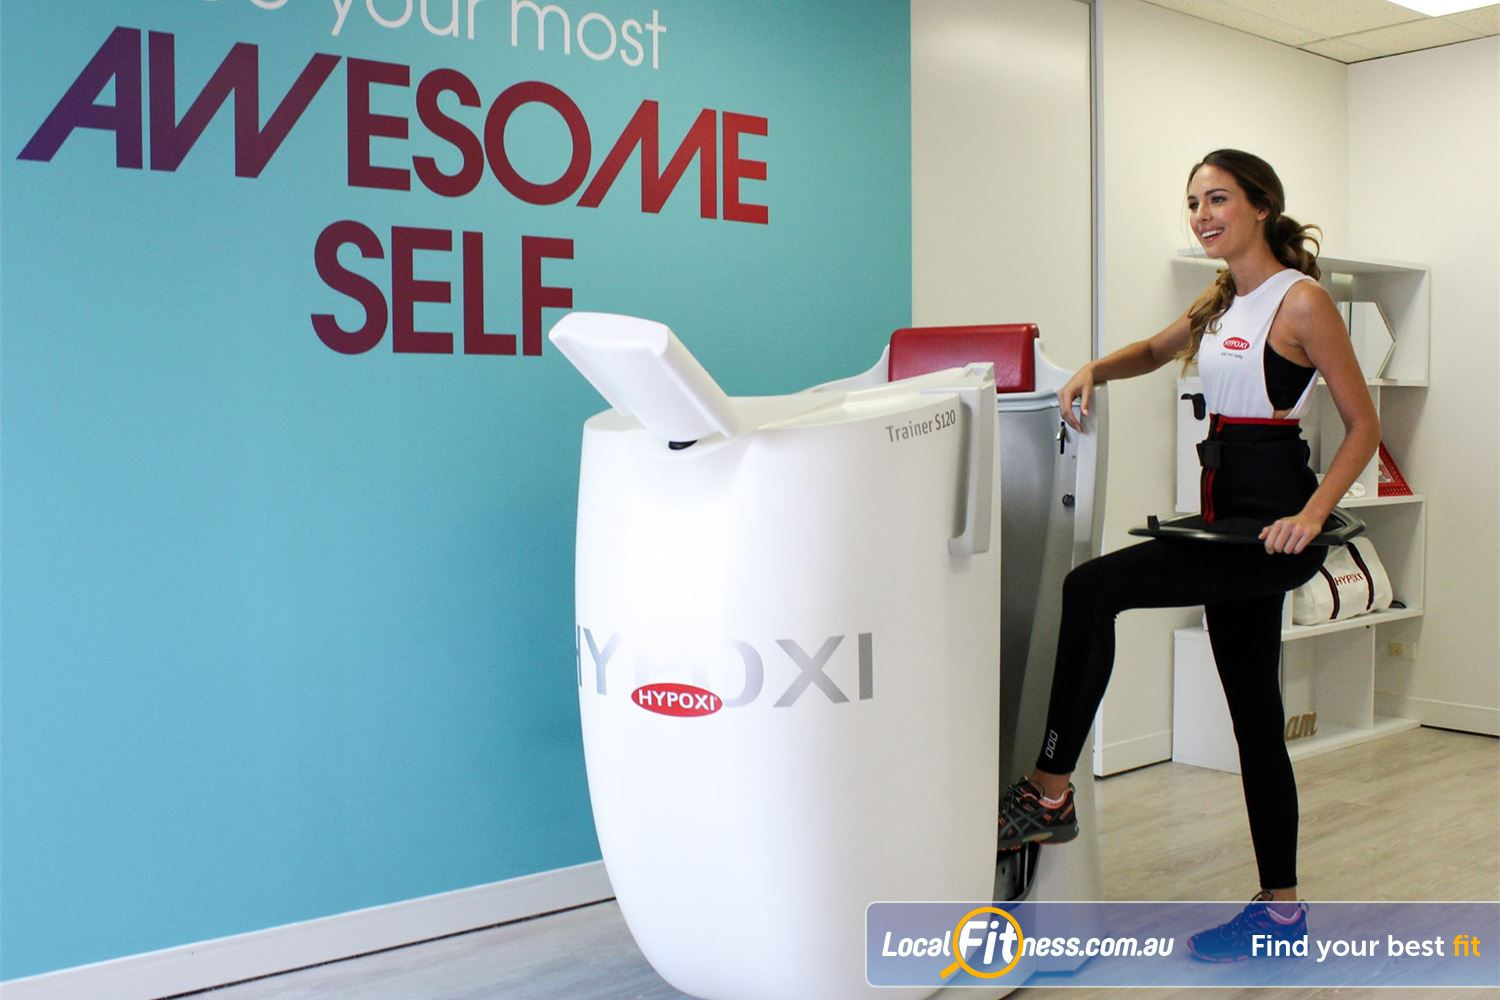 HYPOXI Weight Loss Balgowlah For women HYPOXI is great for Balgowlah cellulite reduction.